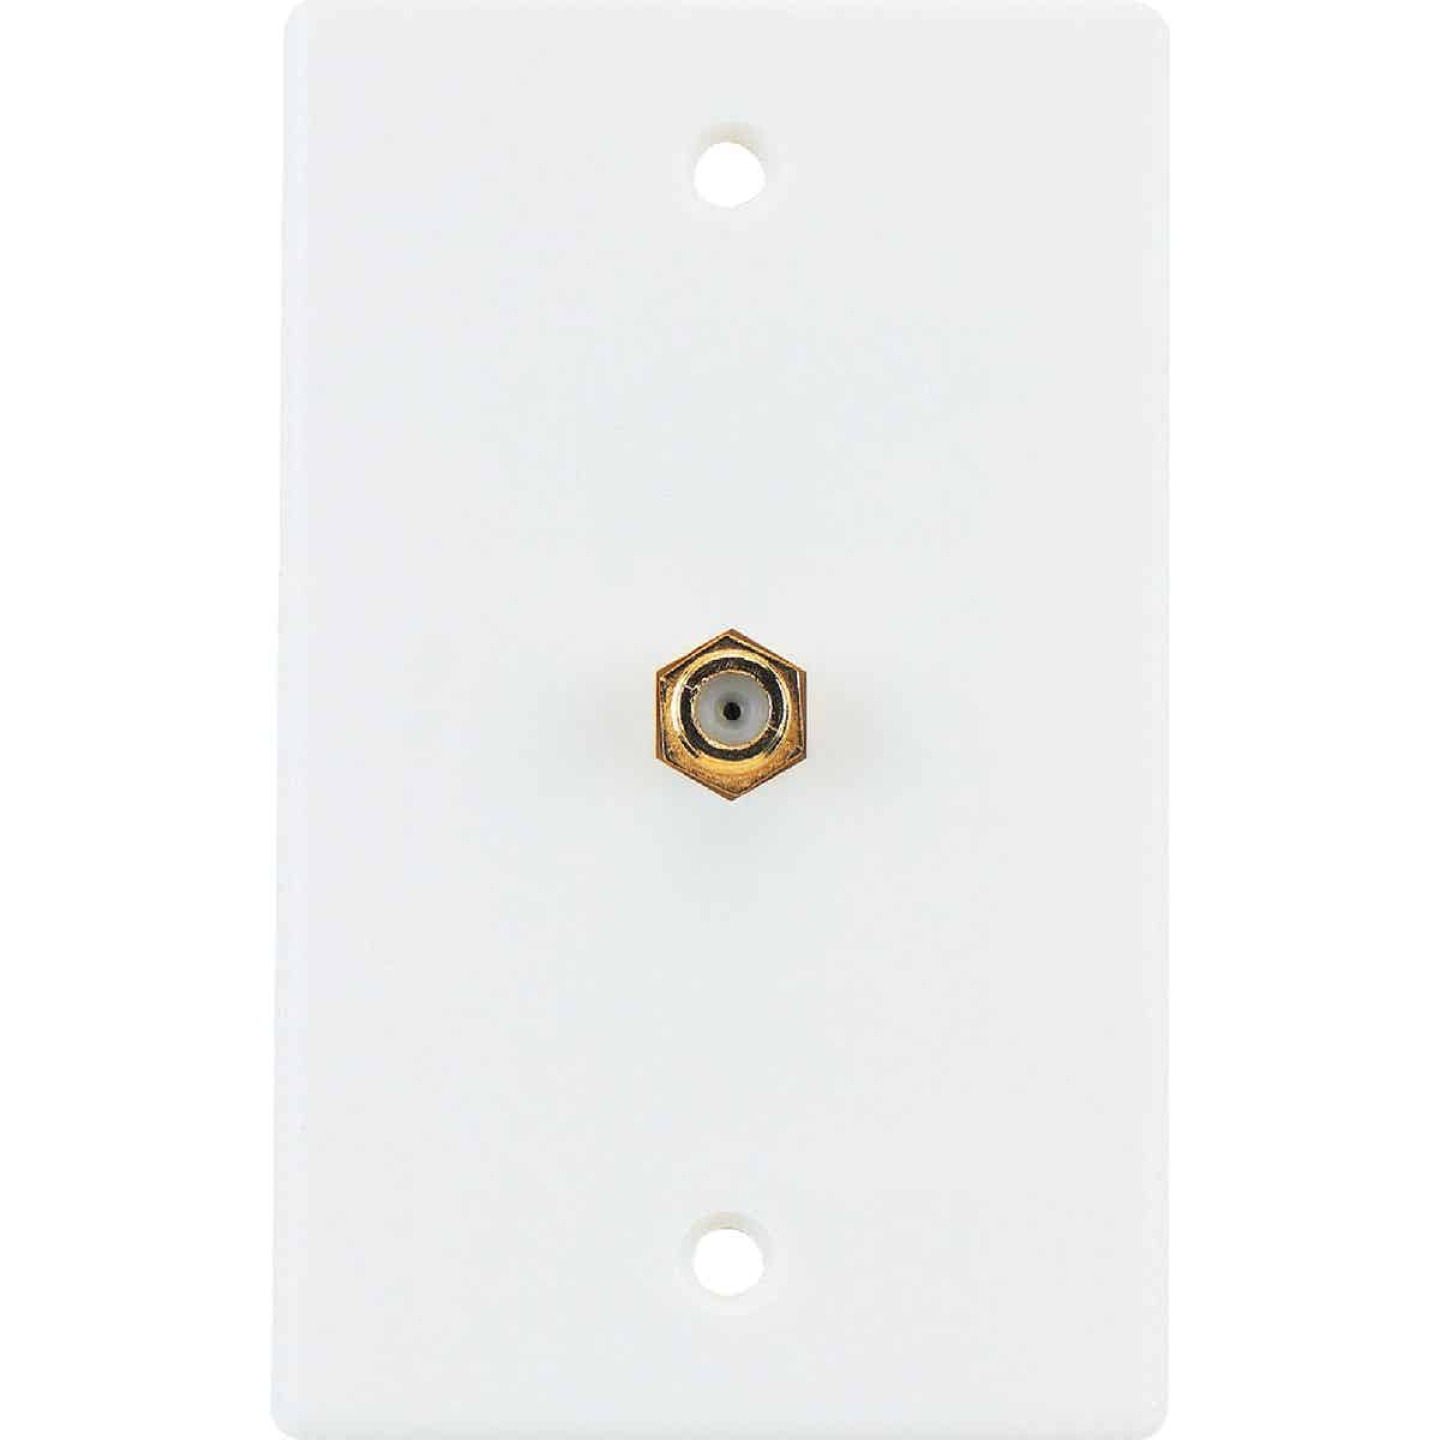 RCA White Single F-Connector Coaxial Wall Plate Image 3